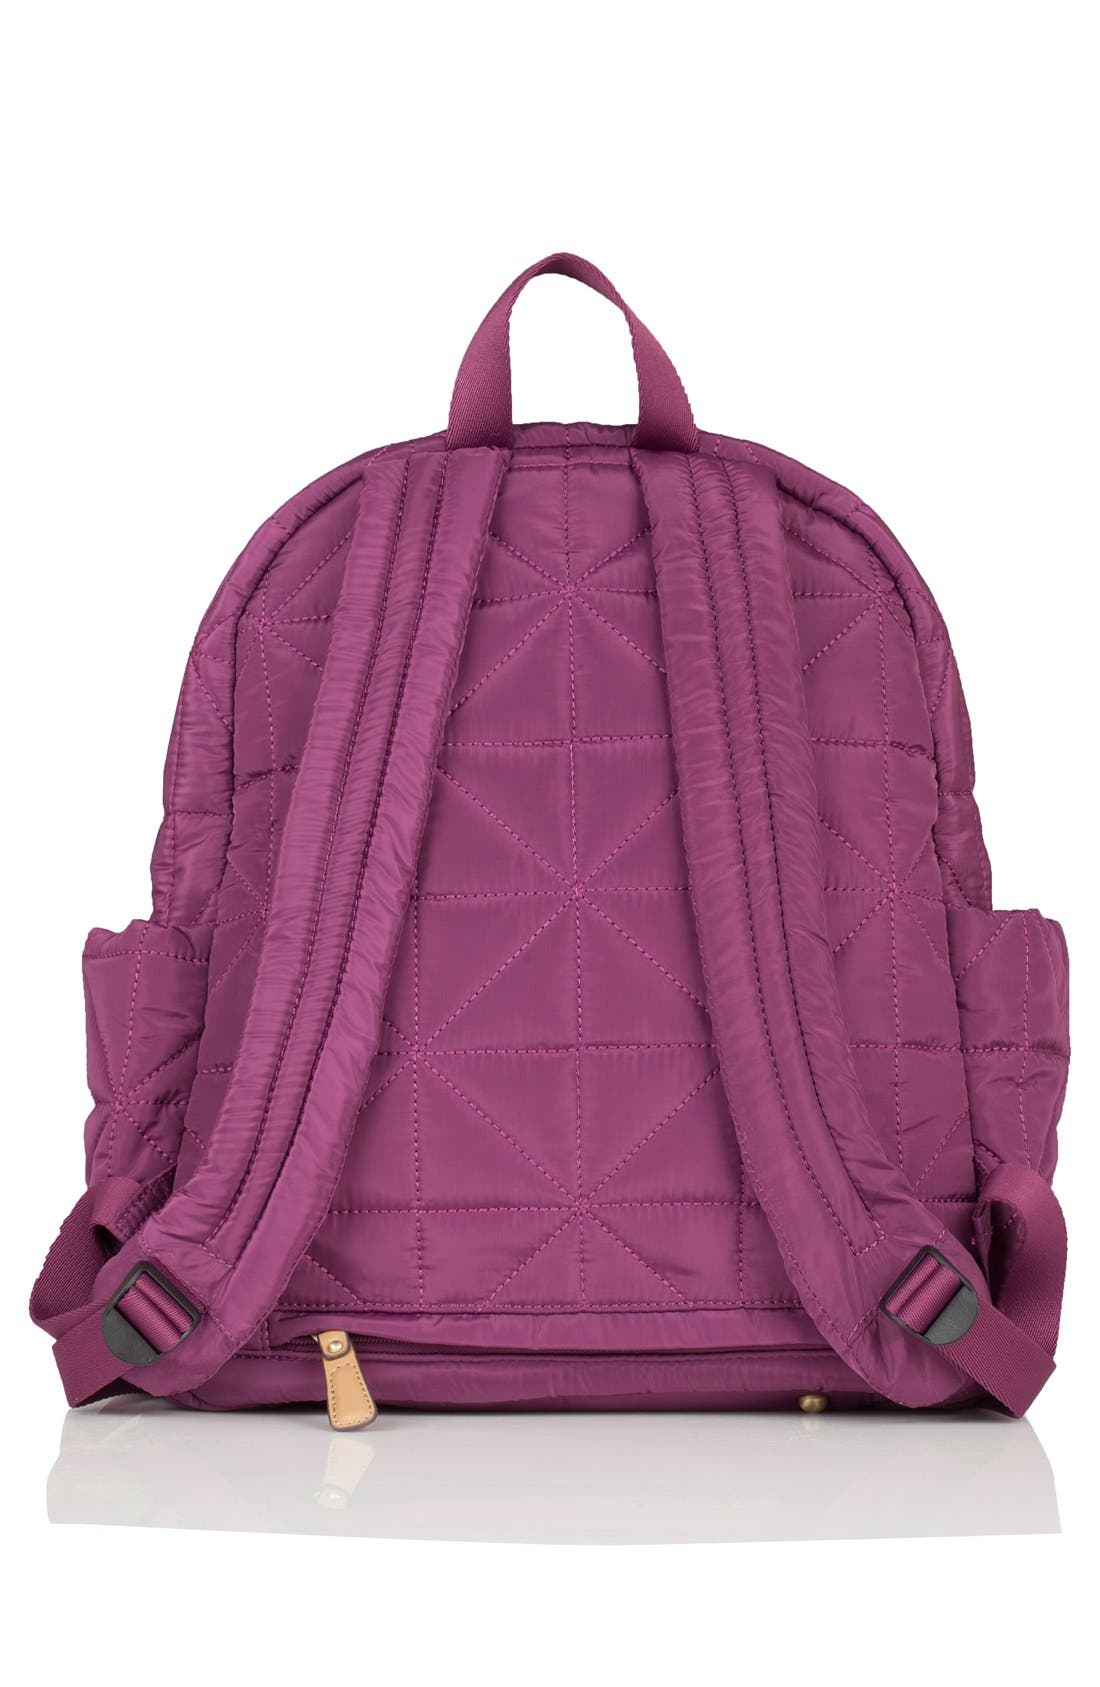 Quilted Water Resistant Nylon Diaper Backpack,                             Alternate thumbnail 2, color,                             Plum